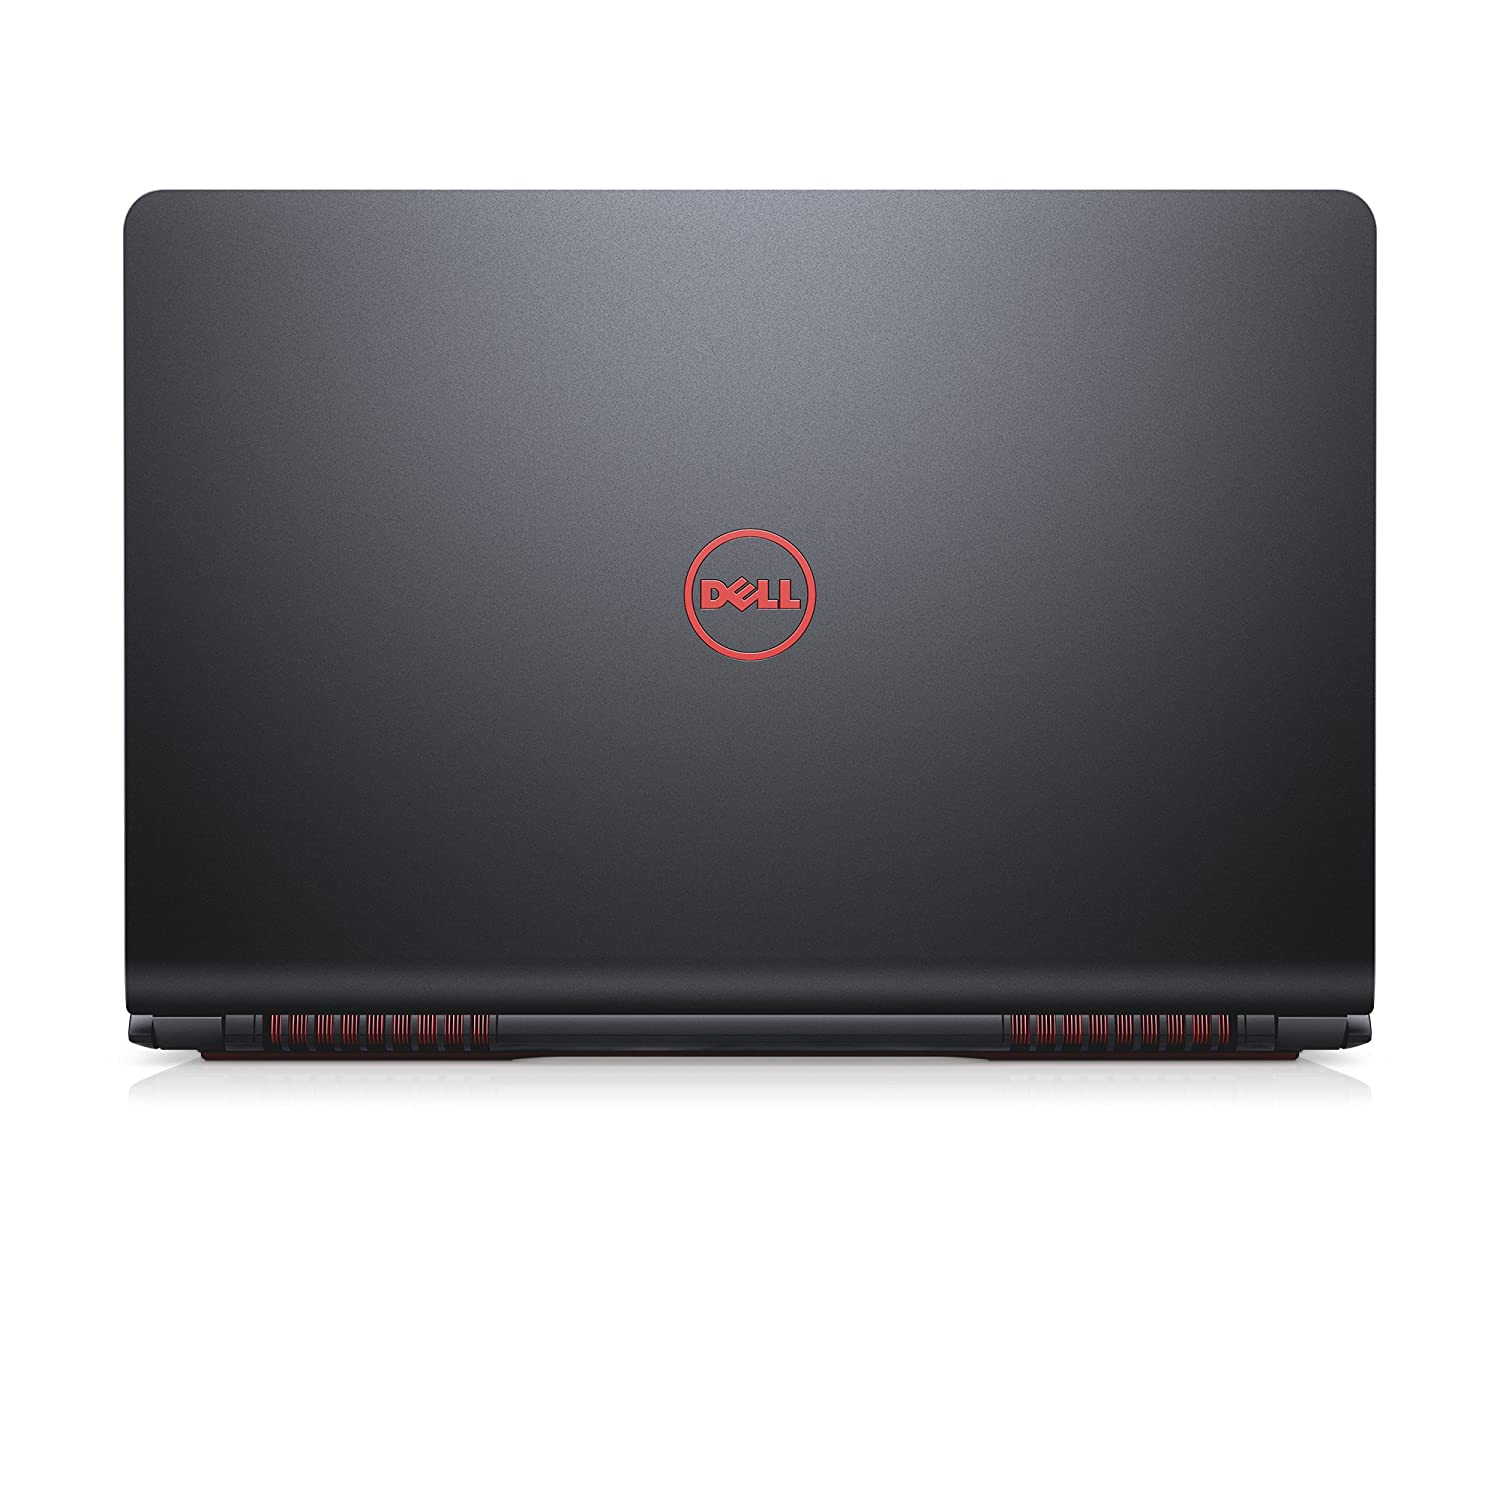 "Amazon.com: Dell i5577-7700BLK-PUS,15.6"" Full HD Gaming Laptop,(7th Gen  Intel Core i7 (up to 3.8 GHz),12GB,128GB SSD+ 1TB HDD),NVIDIA GTX 1050 -  Metal ..."